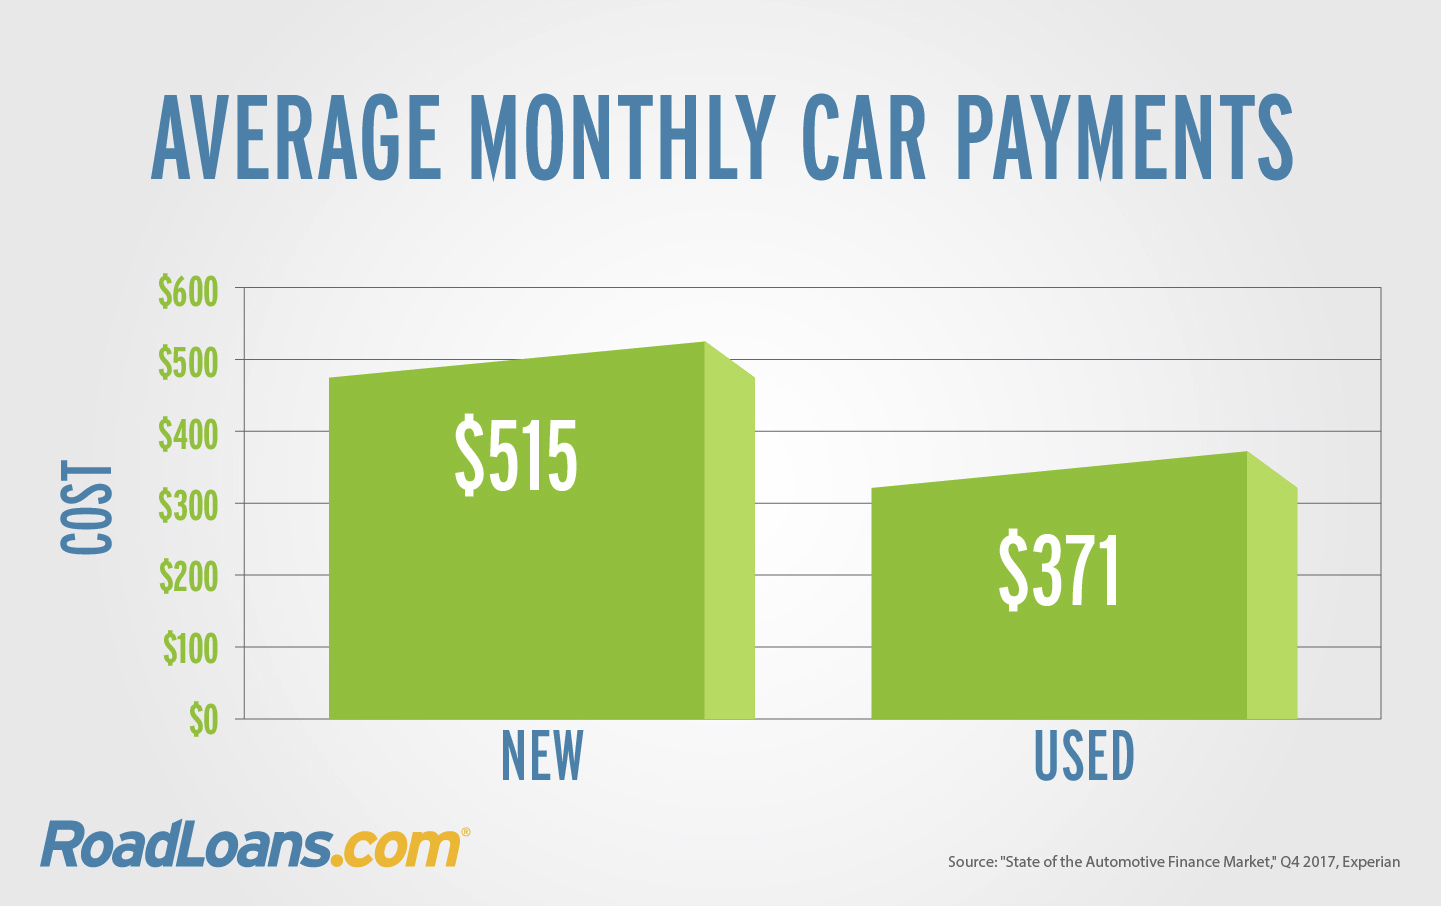 Average new and used car payments